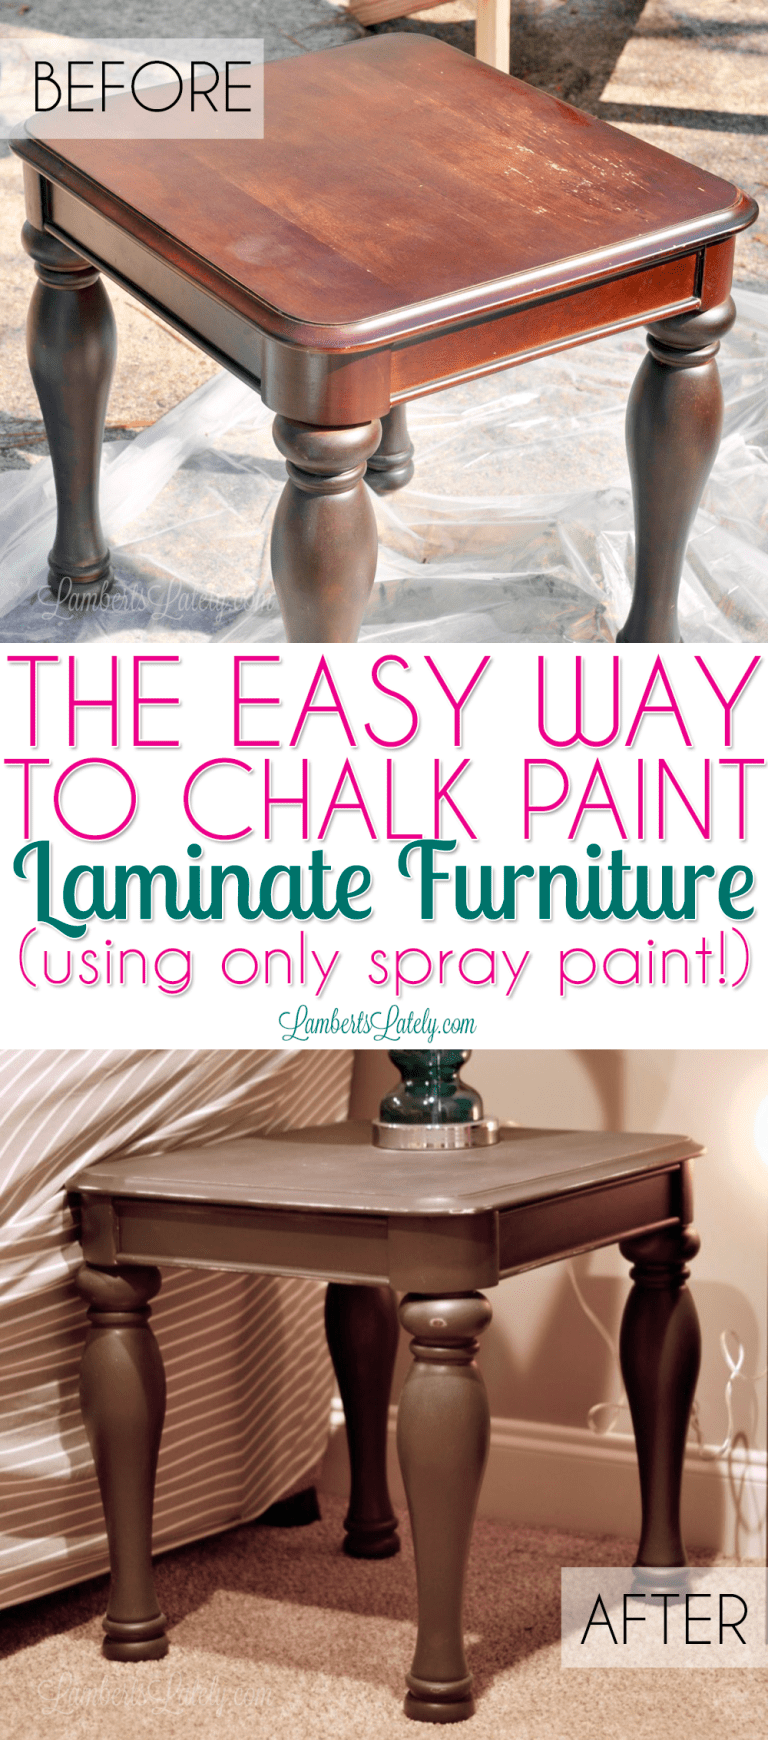 The Easy Way to Chalk Paint Laminate Furniture (using only spray paint!)   Lamberts Lately